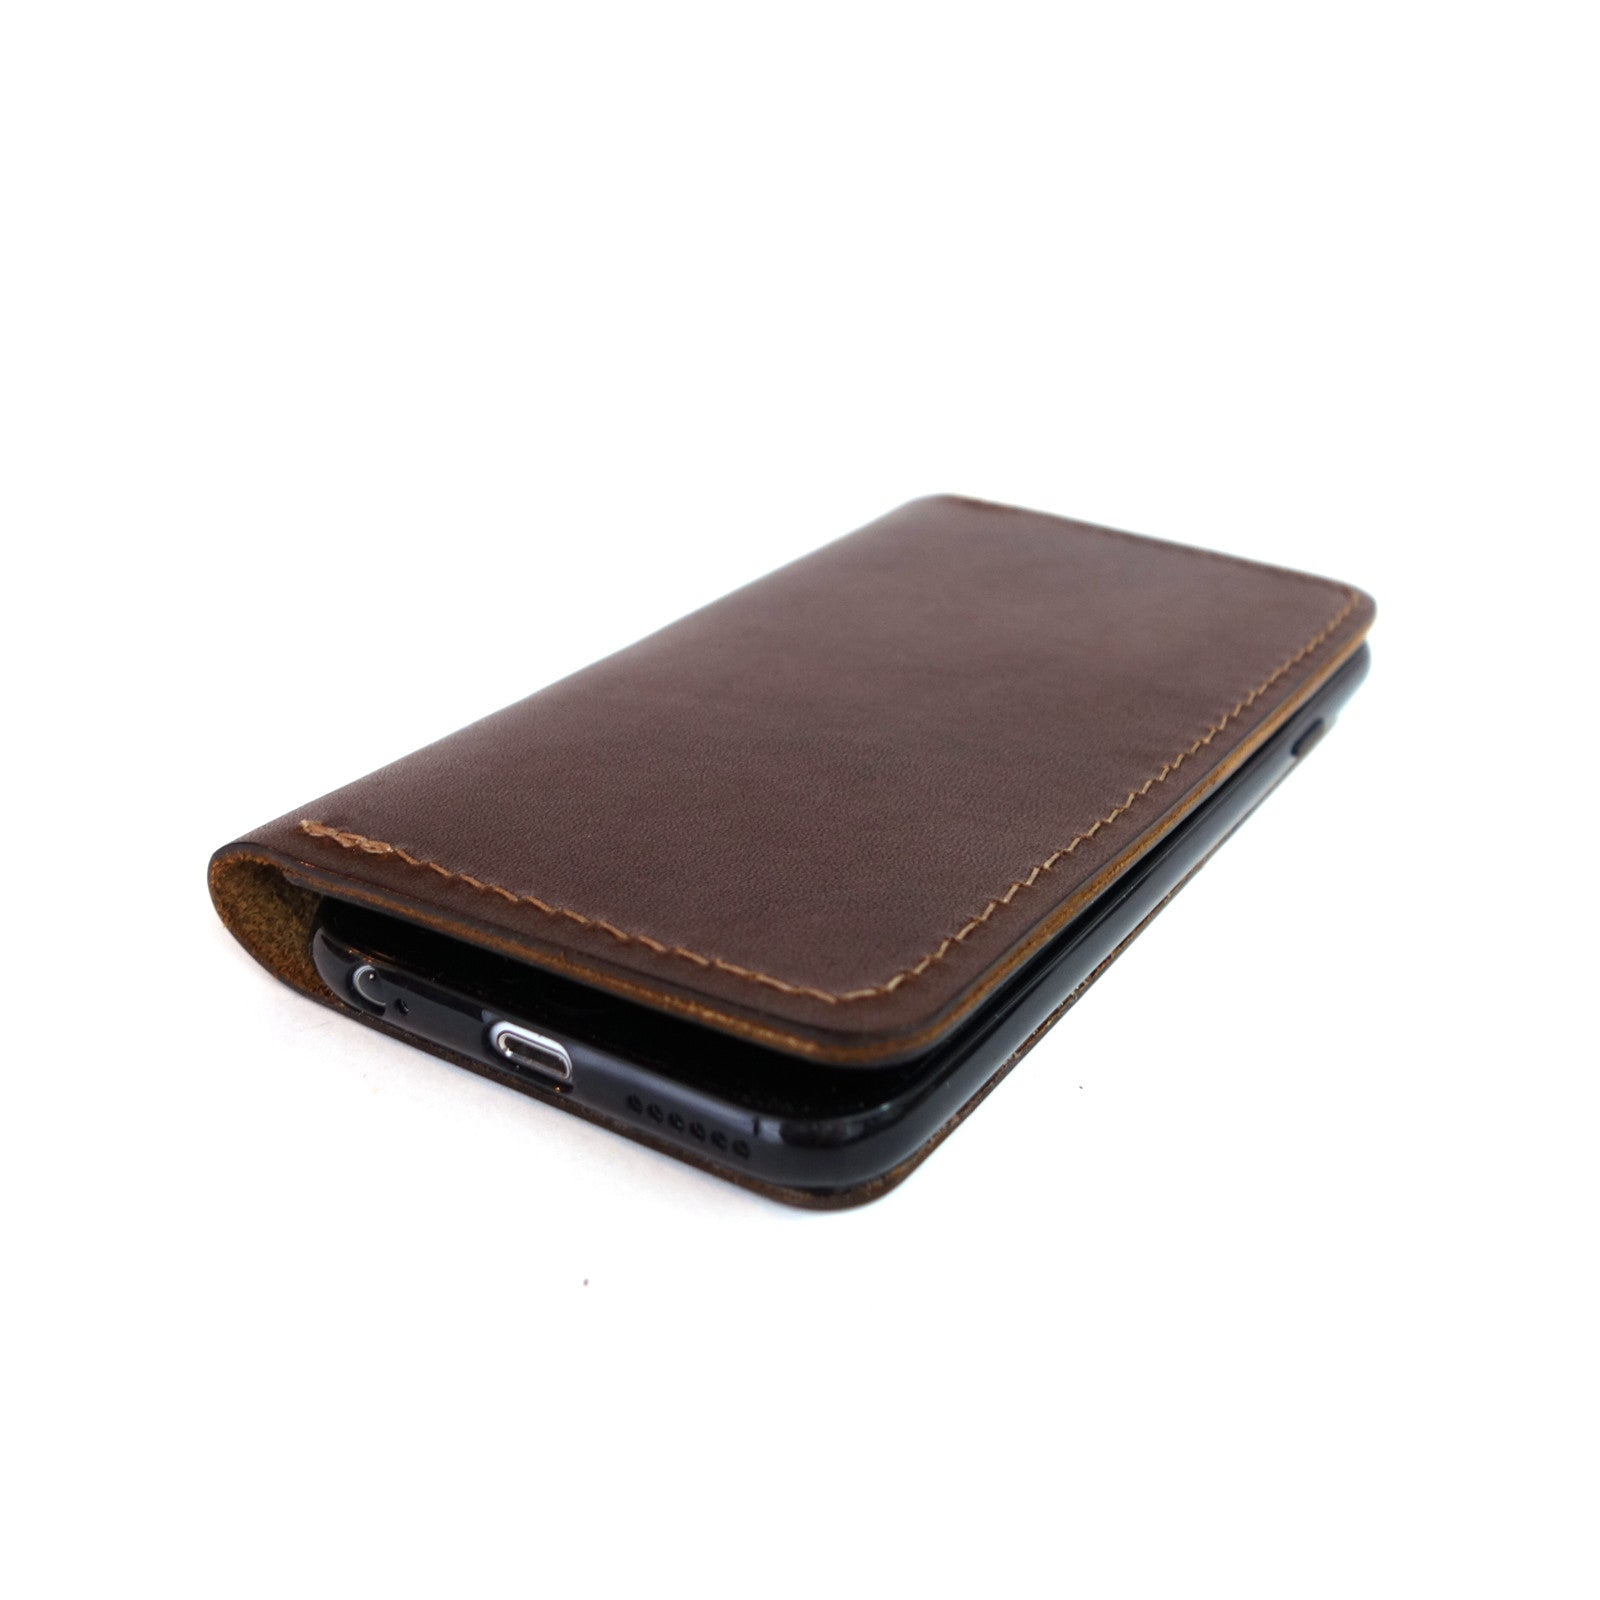 iphone 6 wallet, iphone 6 case, leather iphone 6 case, iphone 6 leather wallet, quality iphone 6 case, the good book, thegoodbook, A leather wallet, an iPhone case, and sketchbook all in one. theGOODbook™  is designed to consolidate the many items we carry in our pockets everyday.